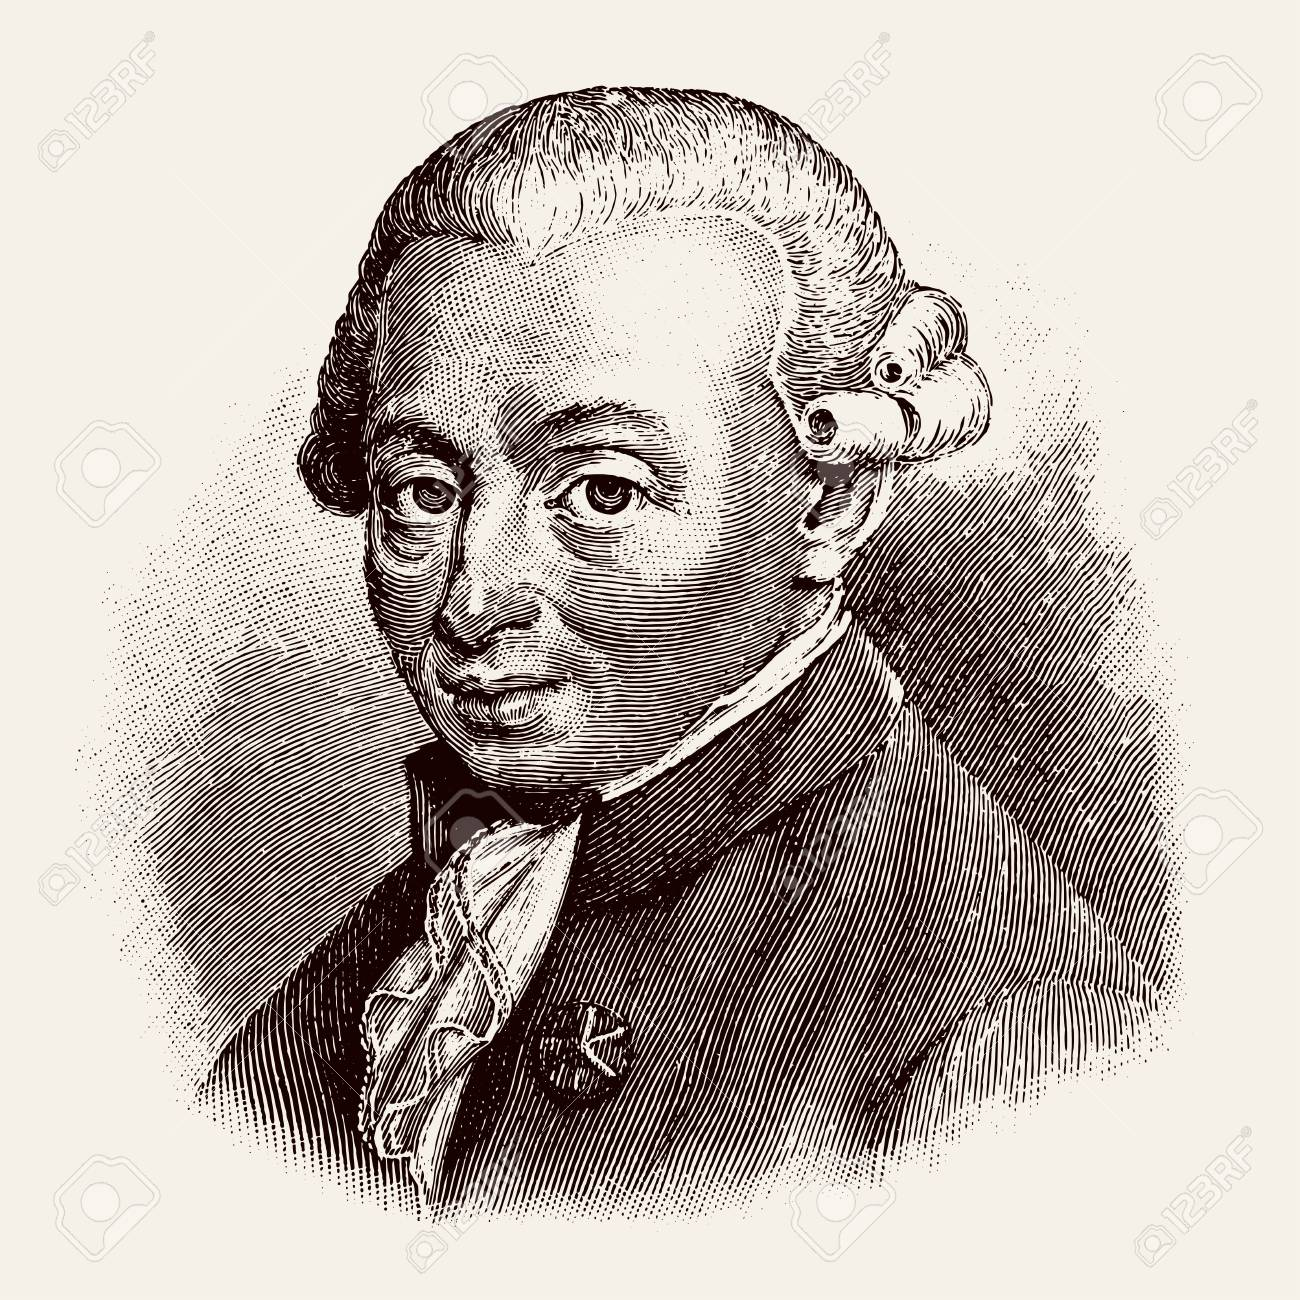 vectorized old engraving of Immanuel Kant, engraving is from Meyers Lexicon published 1914 - Leipzig, Deutschland - 125016618